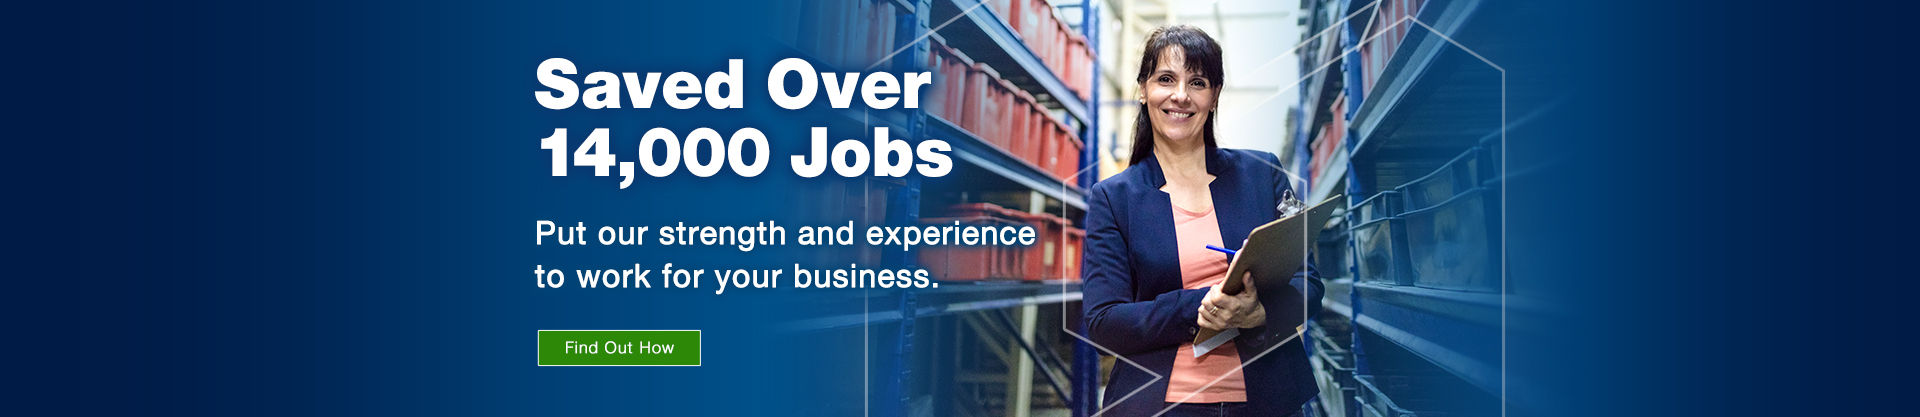 Saved over 14,000 jobs. Put our strength and experience to work for your business. Find out how.